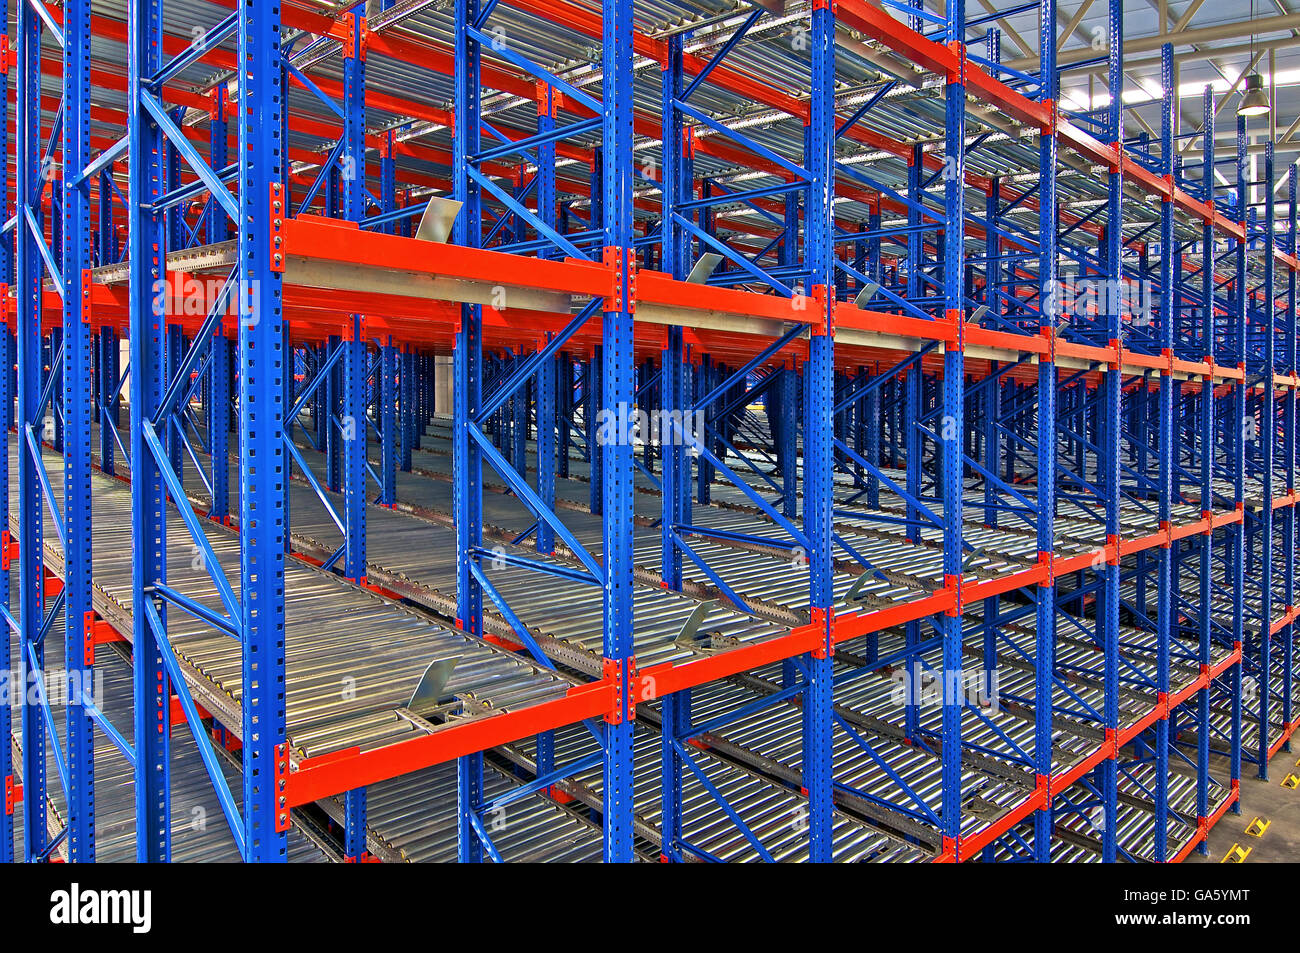 automated shelving warehouse stockfotos automated shelving warehouse bilder alamy. Black Bedroom Furniture Sets. Home Design Ideas